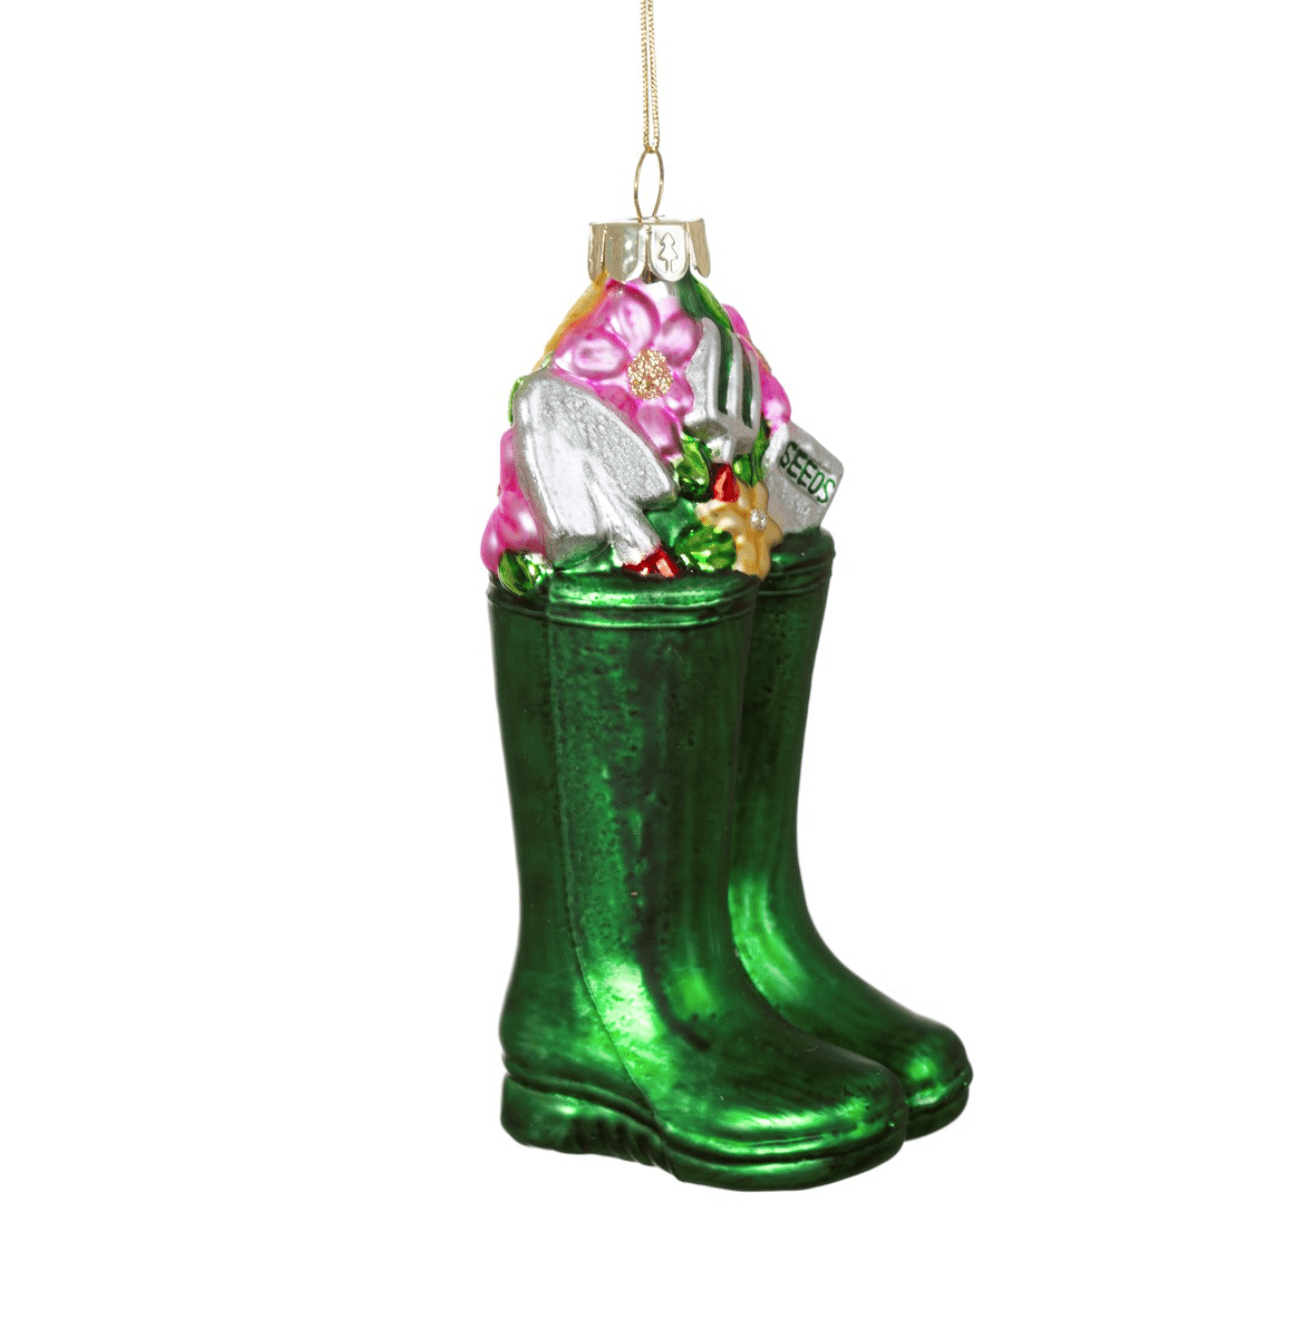 Green Welly Boots Decorative Bauble By Sass & Belle